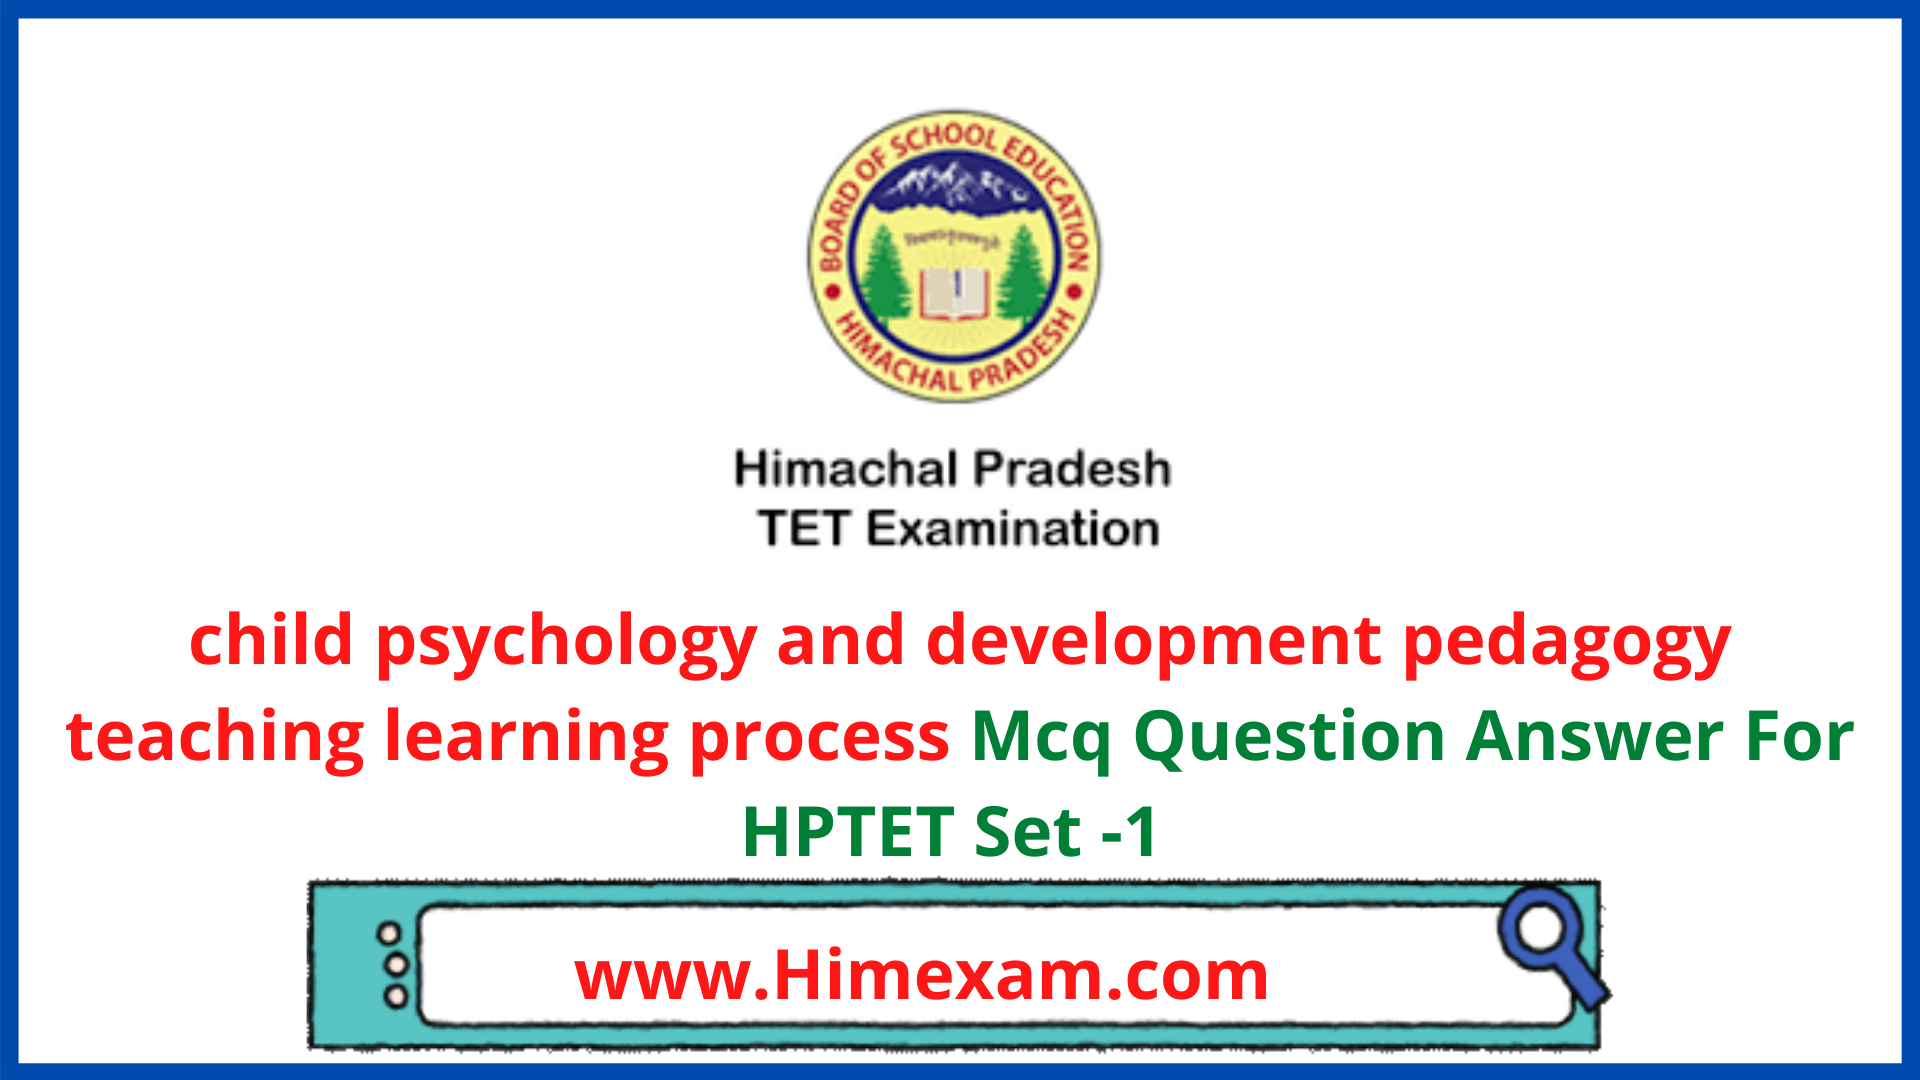 child psychology and development pedagogy teaching learning process Mcq Question Answer For HPTET Set -1